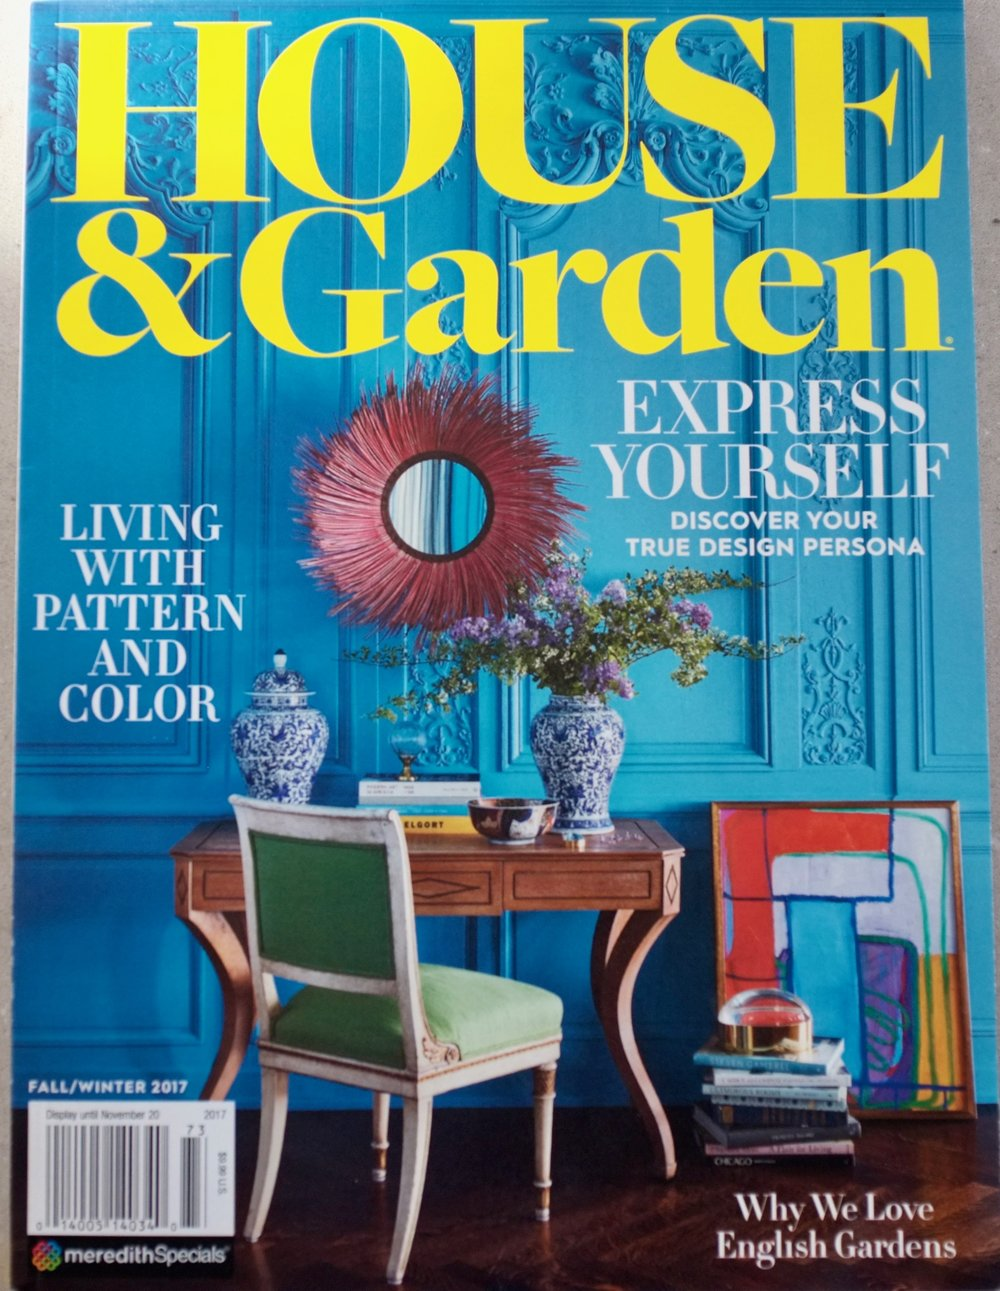 House & Garden - Fall/Winter 2017